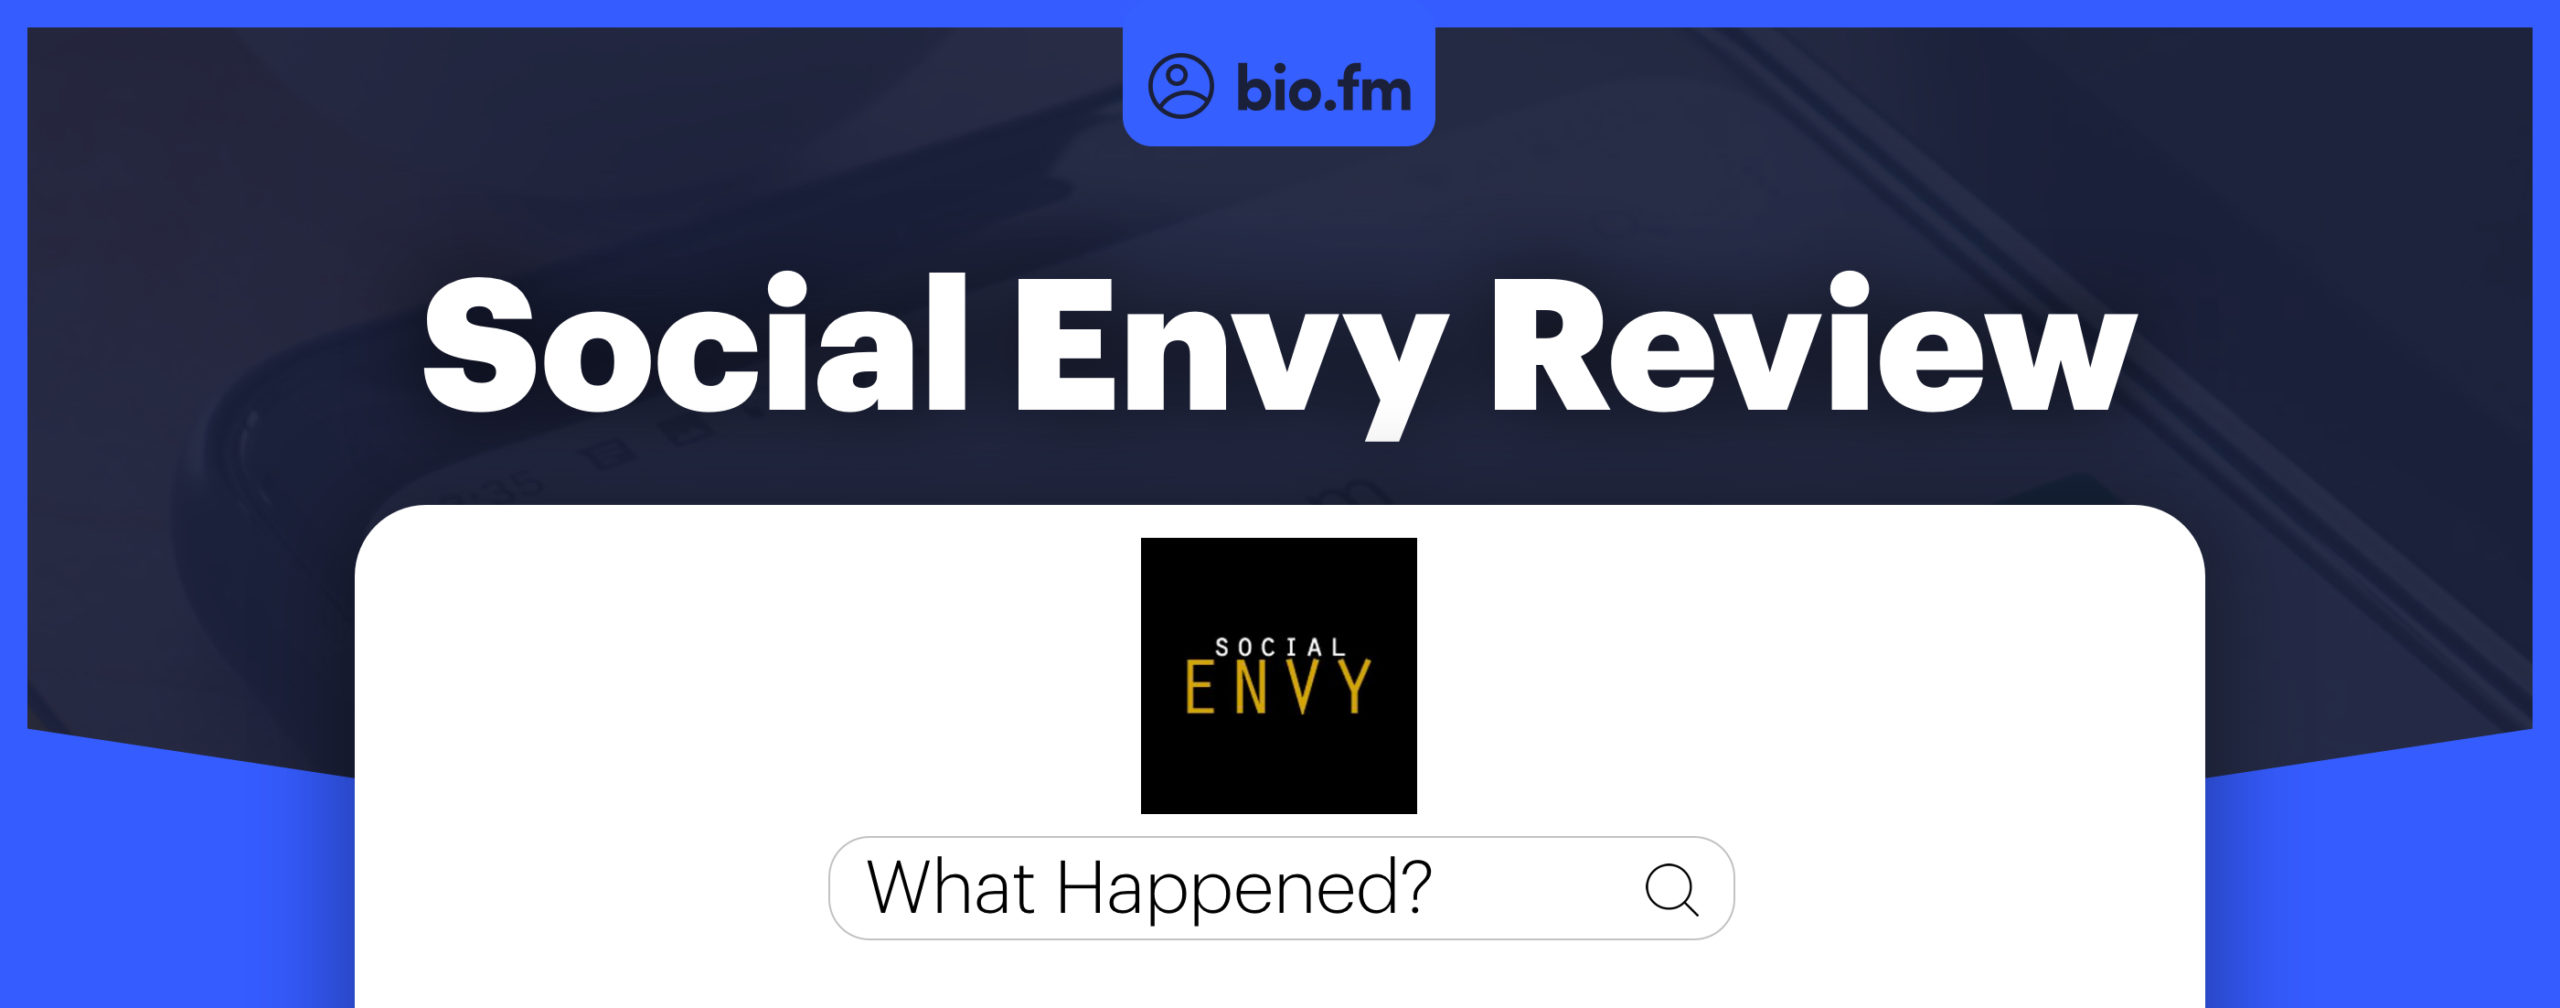 social envy review featured image